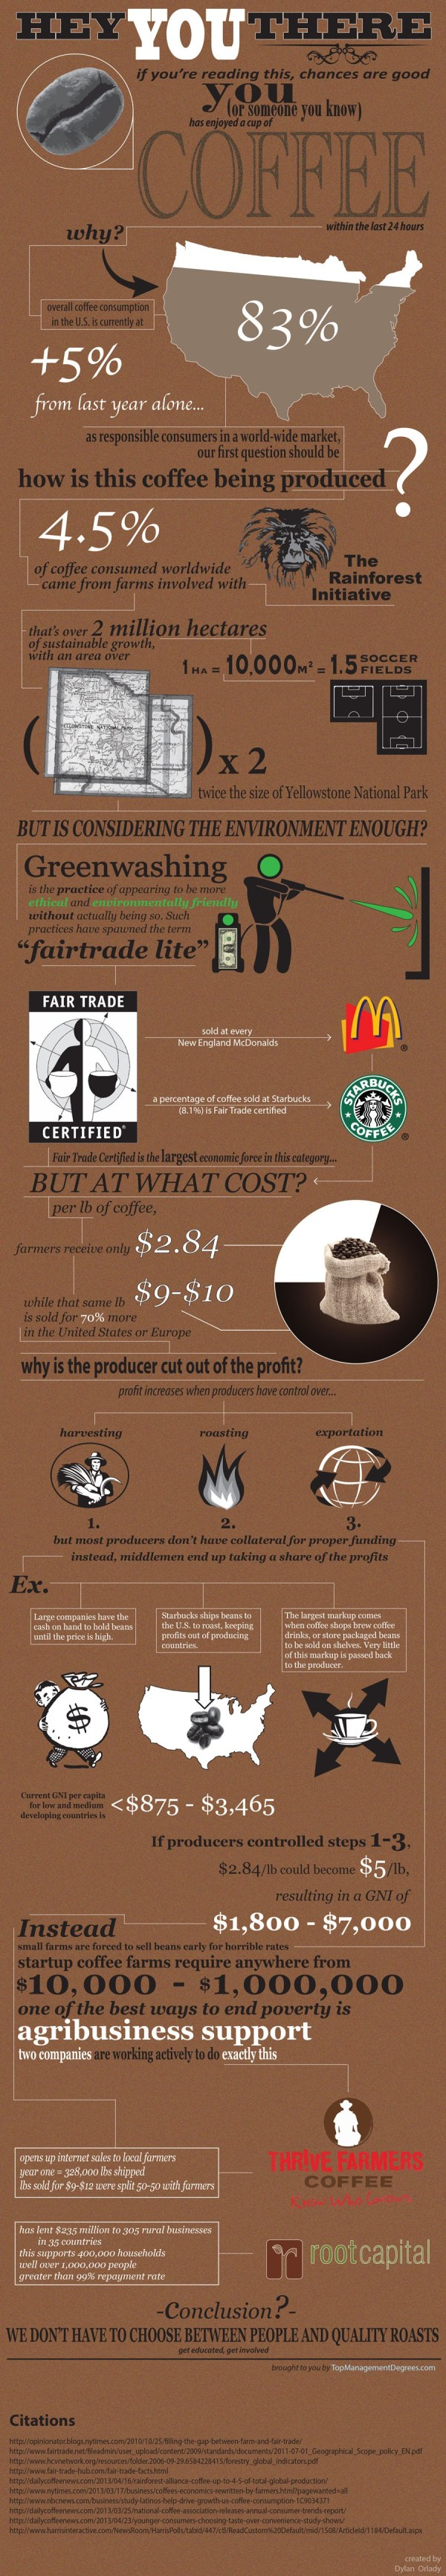 Coffee facts 2015 - 2016